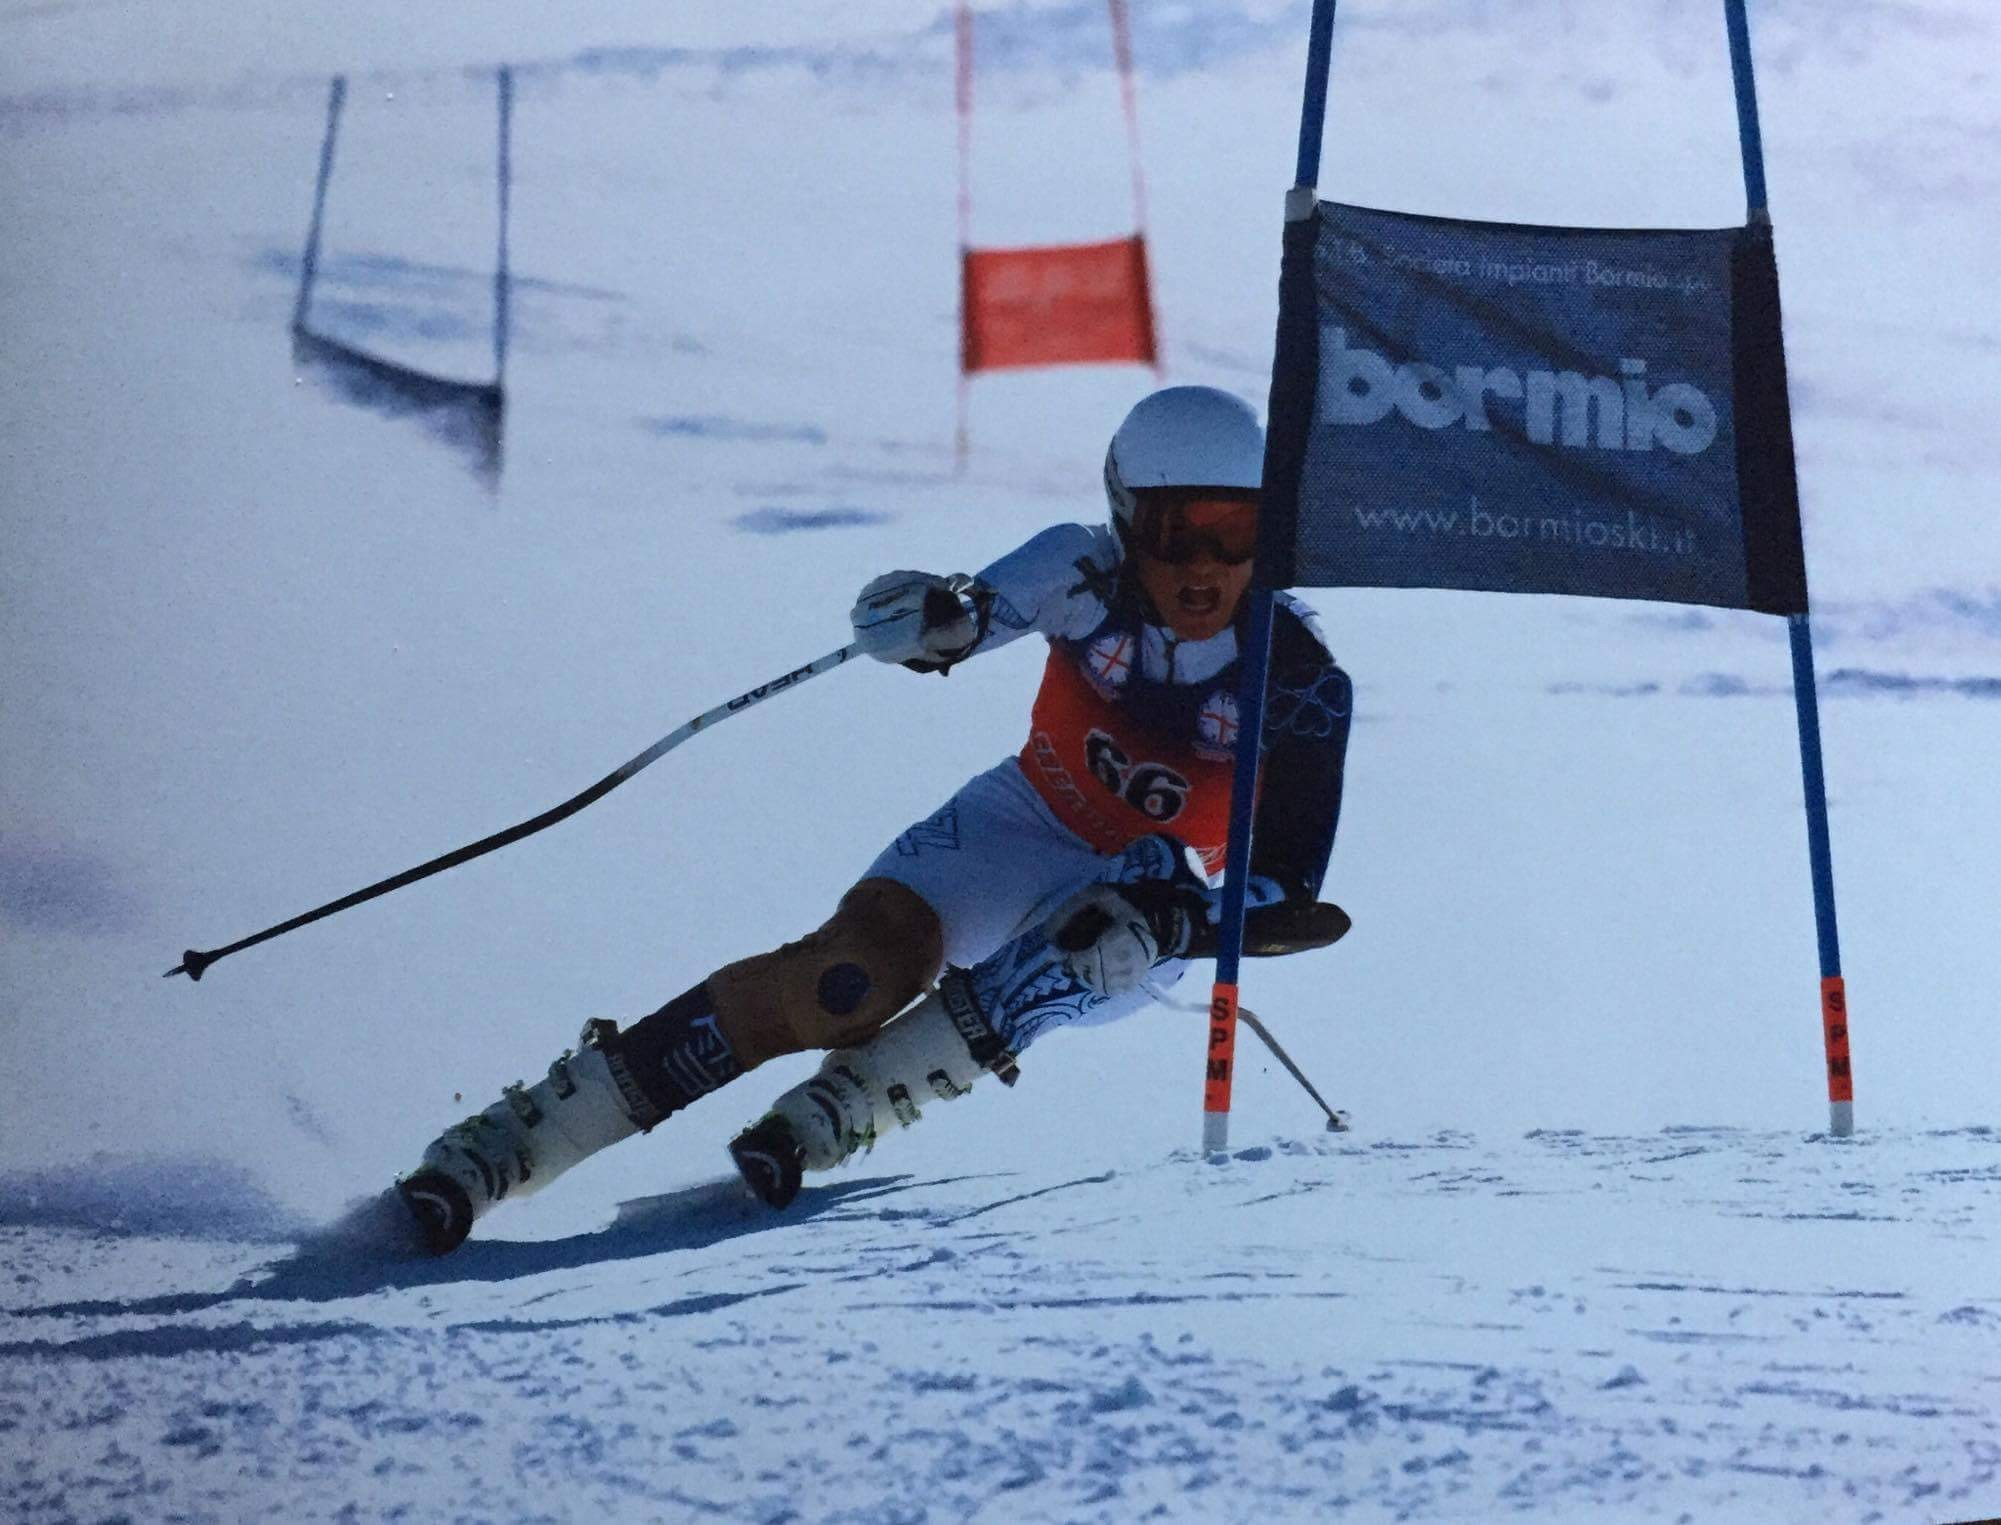 Will Cashmore Skiing 2